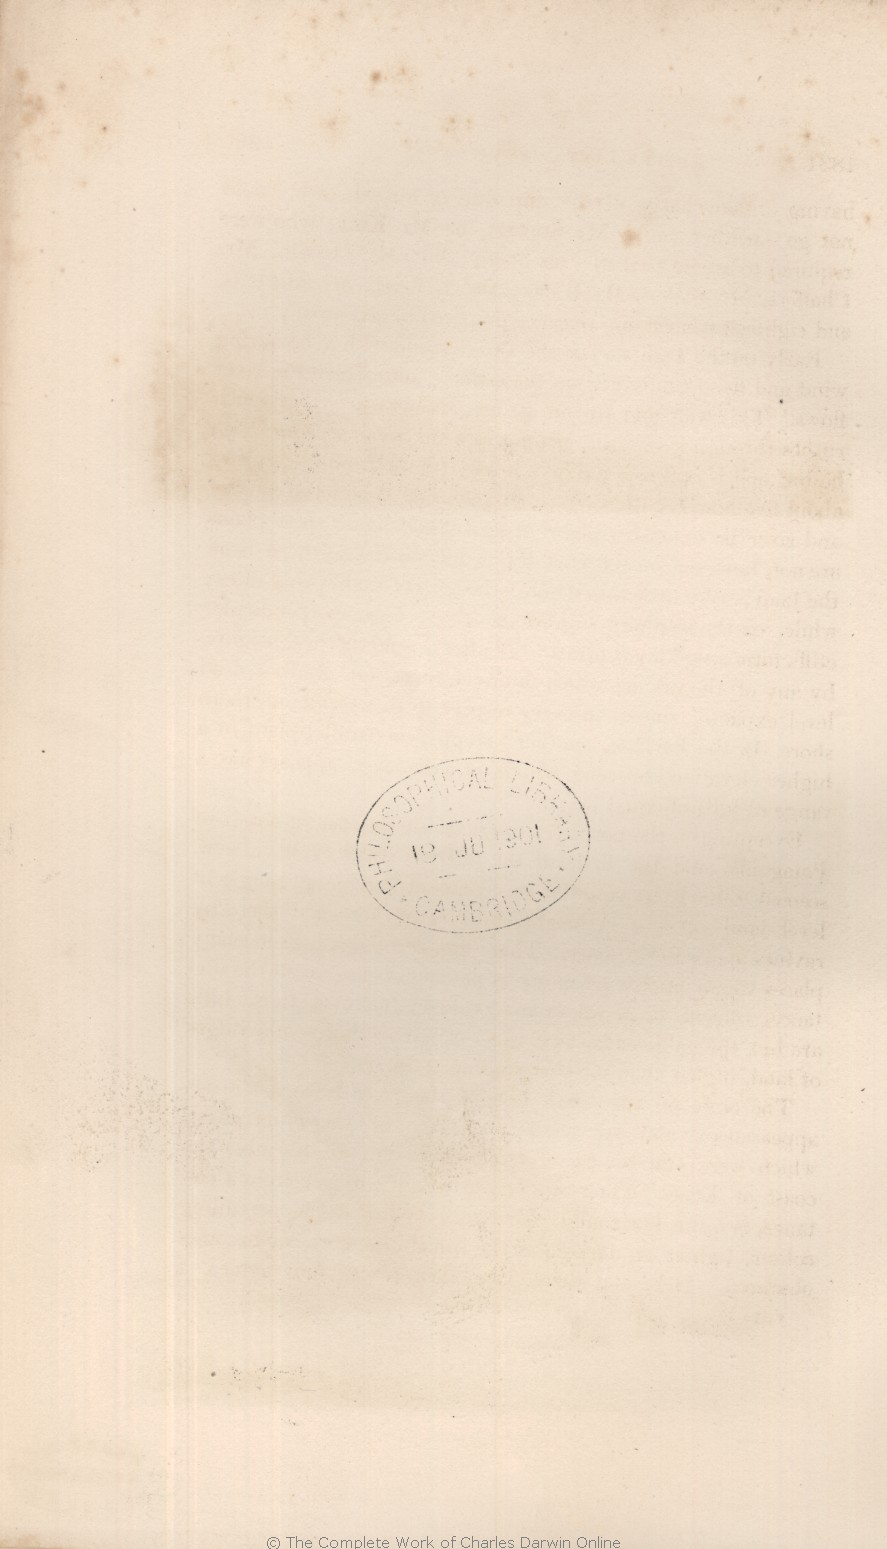 a35670659c6 Narrative of the surveying voyages of His Majesty's Ships Adventure and  Beagle between the years 1826 and 1836, describing their examination of the  southern ...